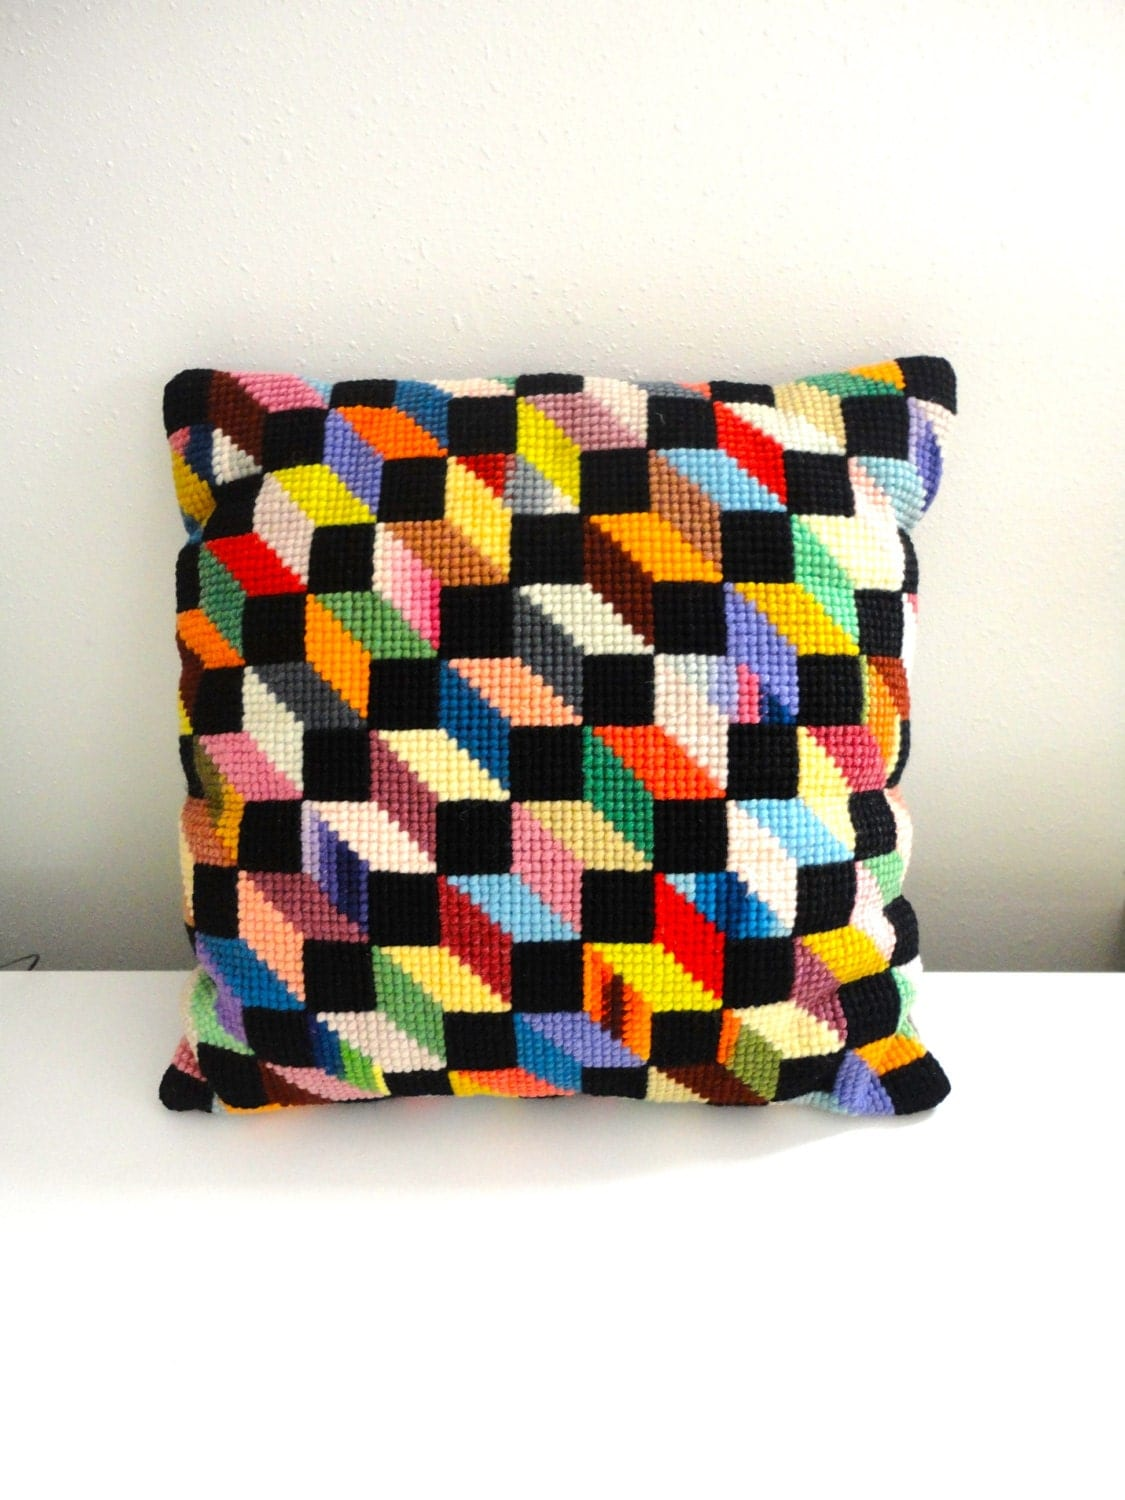 Modern Graphic Pillows : Vintage Modern Graphic Pair of Colorful Pillows Jonathan Adler